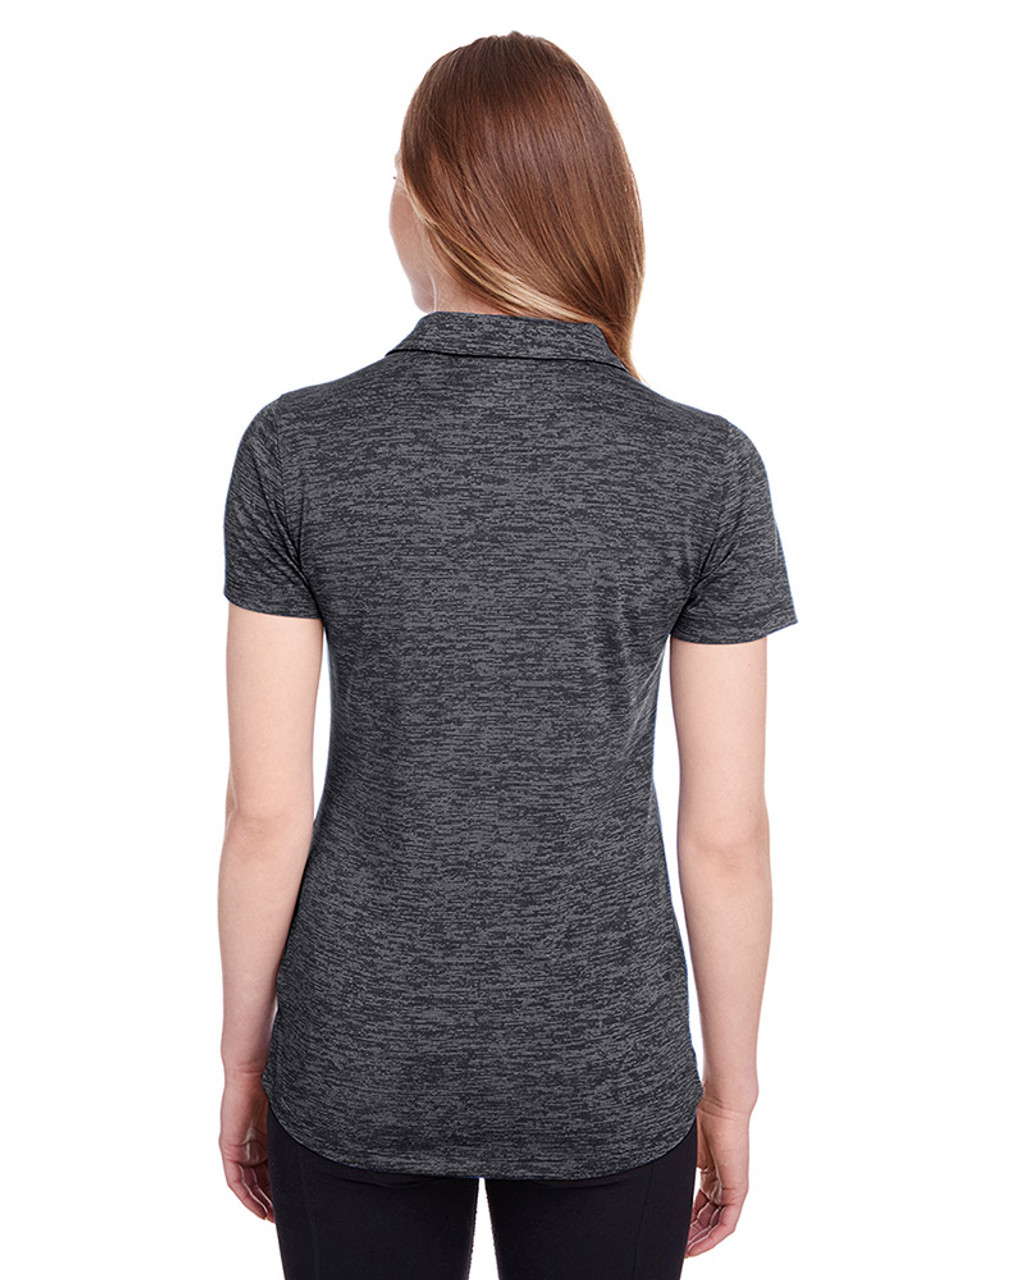 Puma Black - back, 596802 Puma Golf Ladies' Icon Heather Polo | Blankclothing.ca